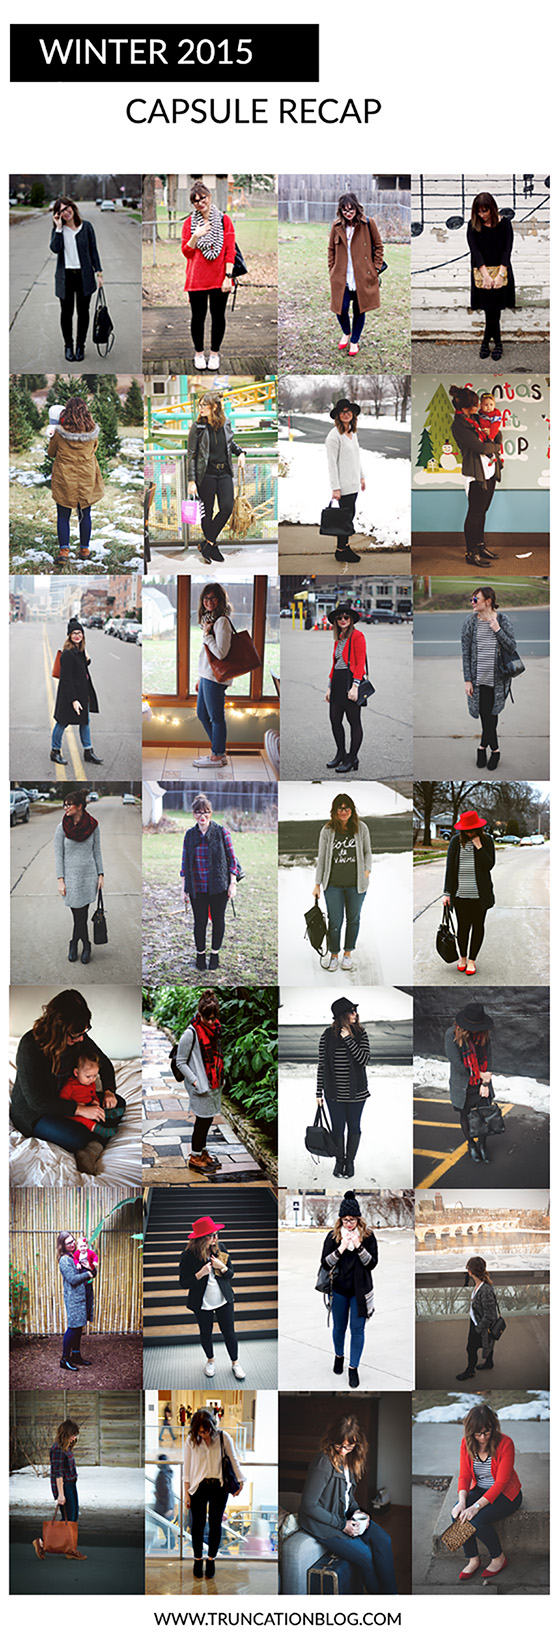 Karin Rambo of truncationblog.com does a recap of her winter capsule wardrobe